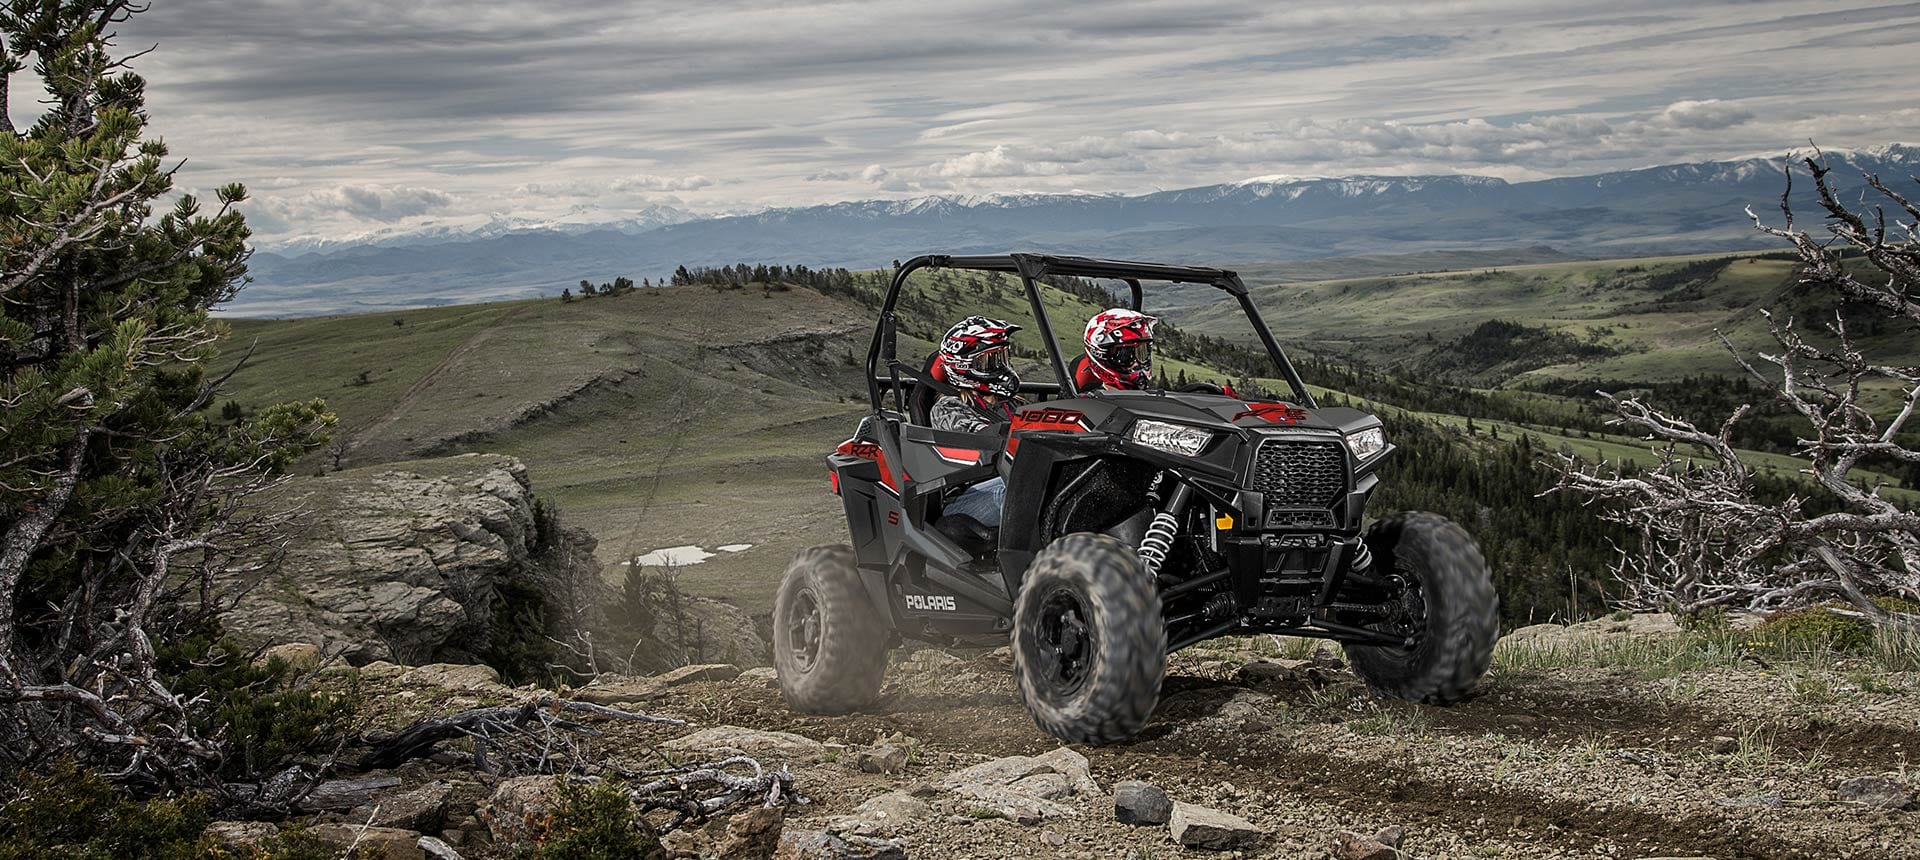 RZR S 1000 OFFROAD CAR